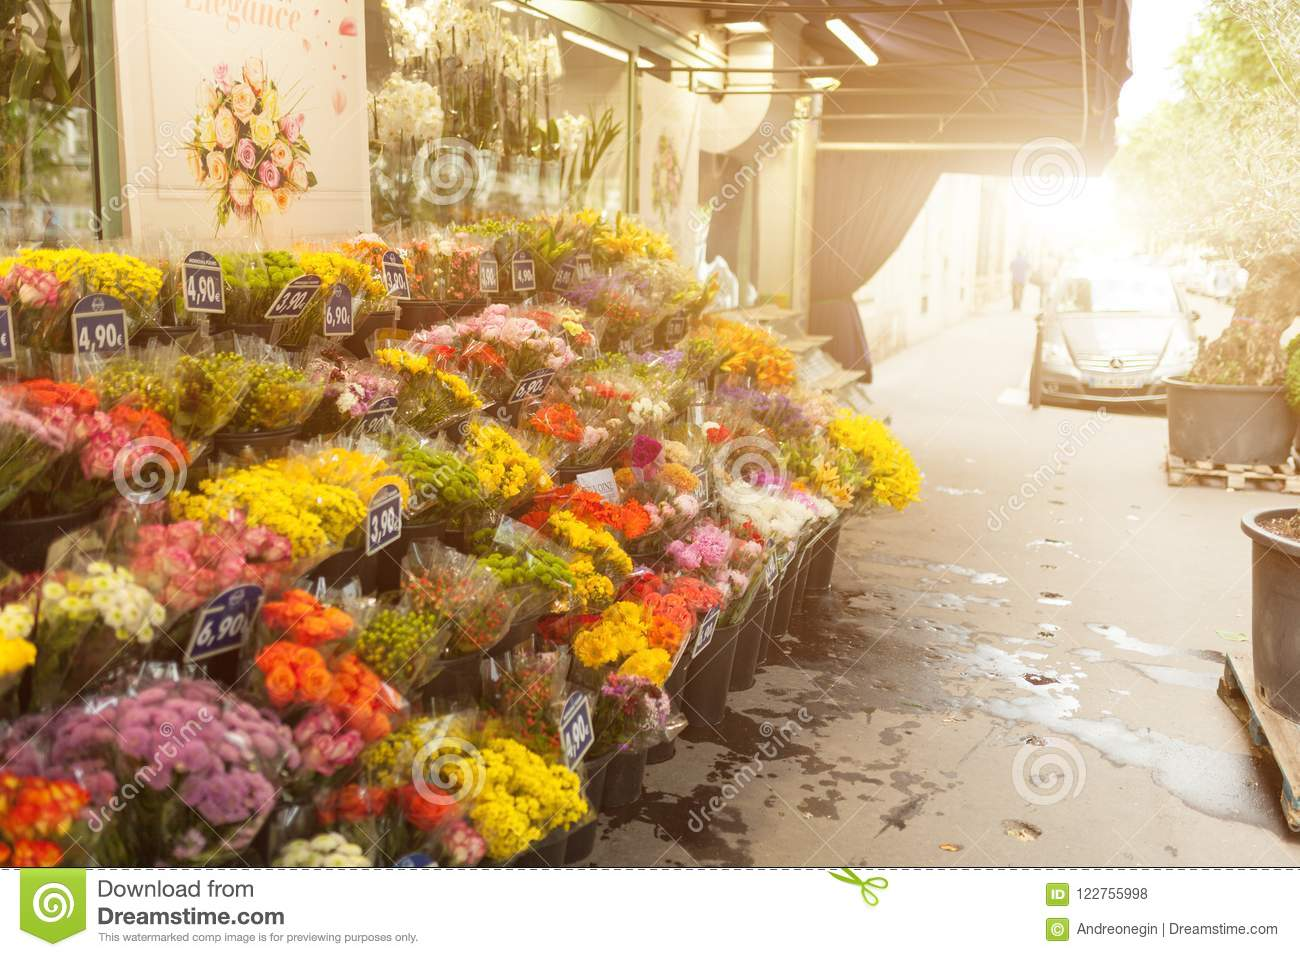 Paris France 02 June 2018 Flower Market There Are Many Beautiful